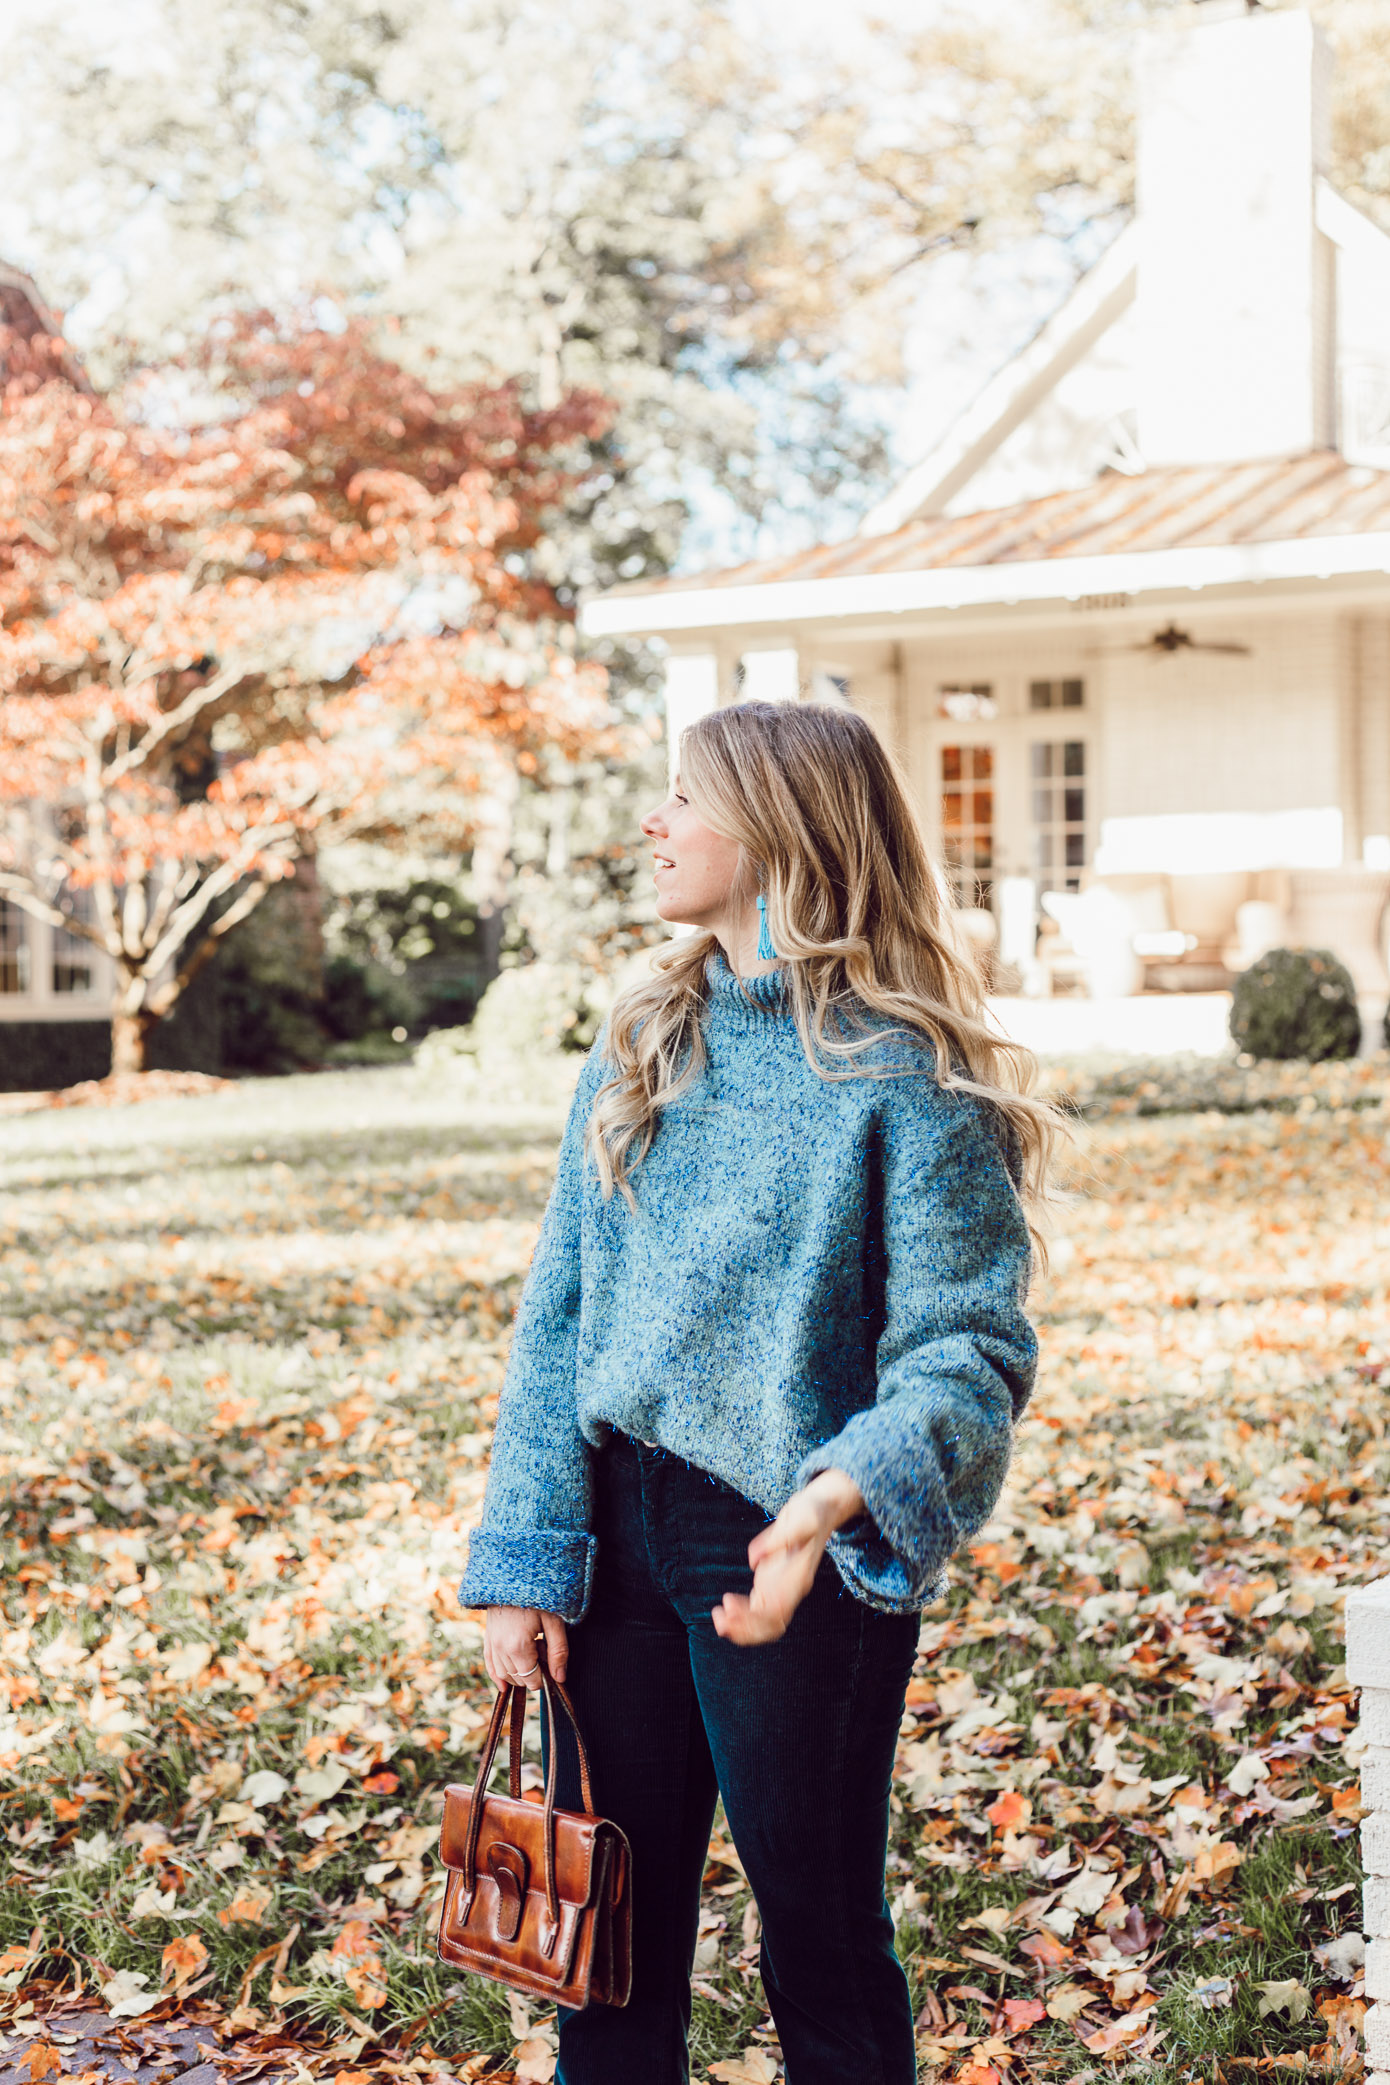 Anthropologie Sparkle Knit Turtleneck Sweater, Styling Corduroys for Winter | Must Try Winter Trend featured on Louella Reese